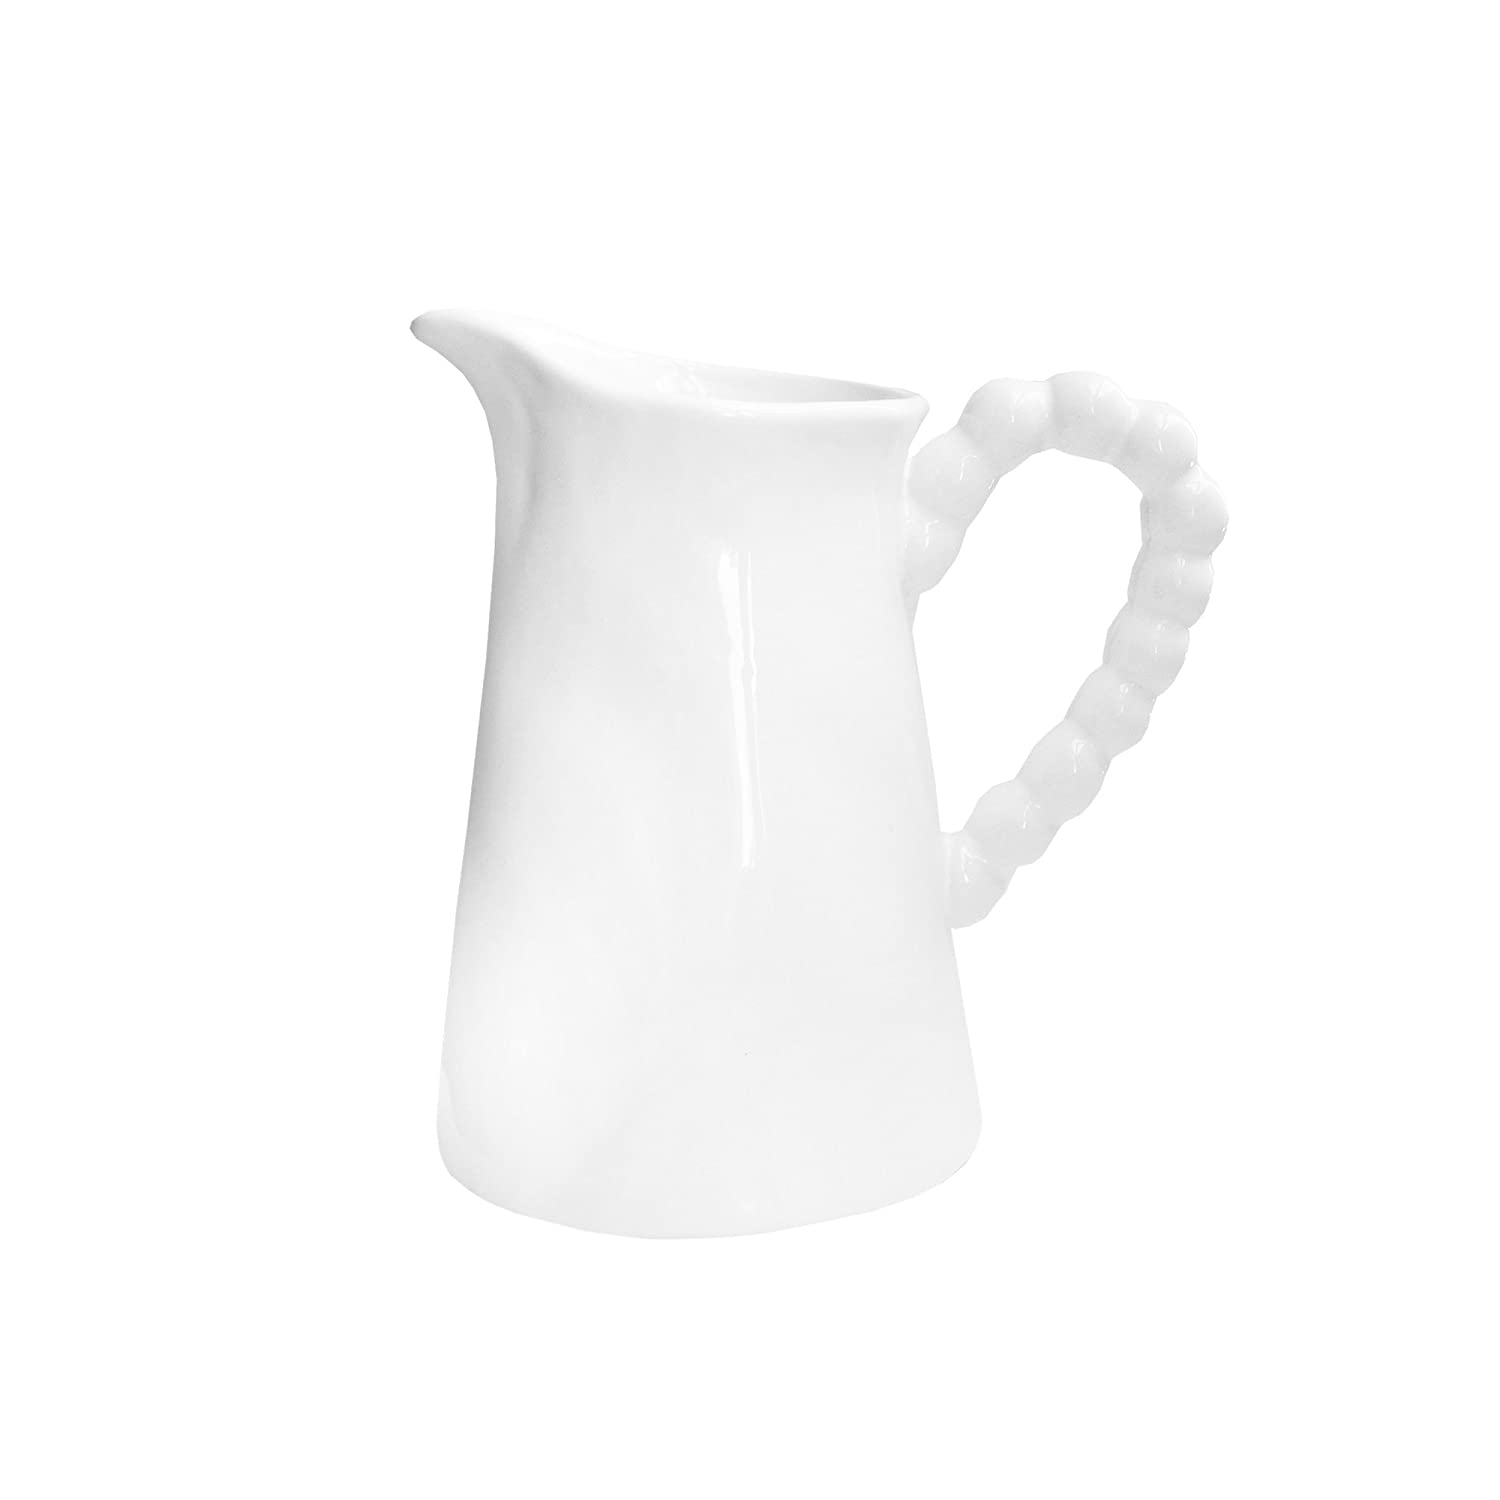 American Atelier Bettina Pitcher, White 6558-PIT